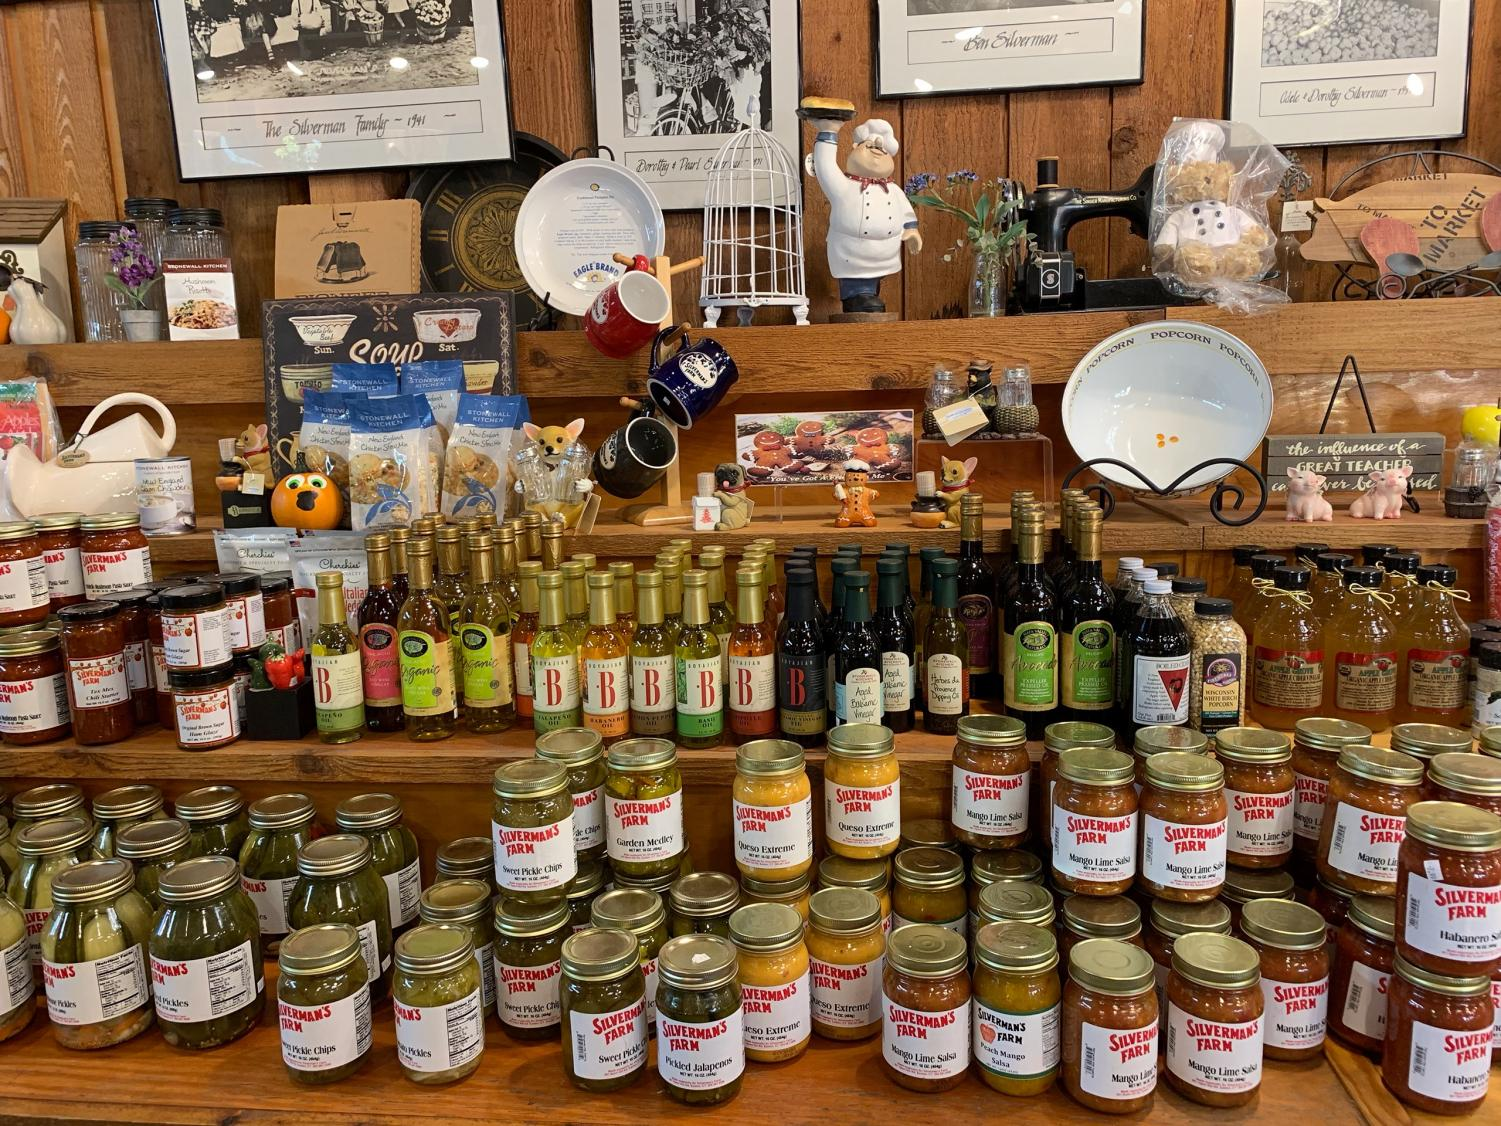 Different homemade condiments, fruits and pastries sold in the market at Silverman's Farm.